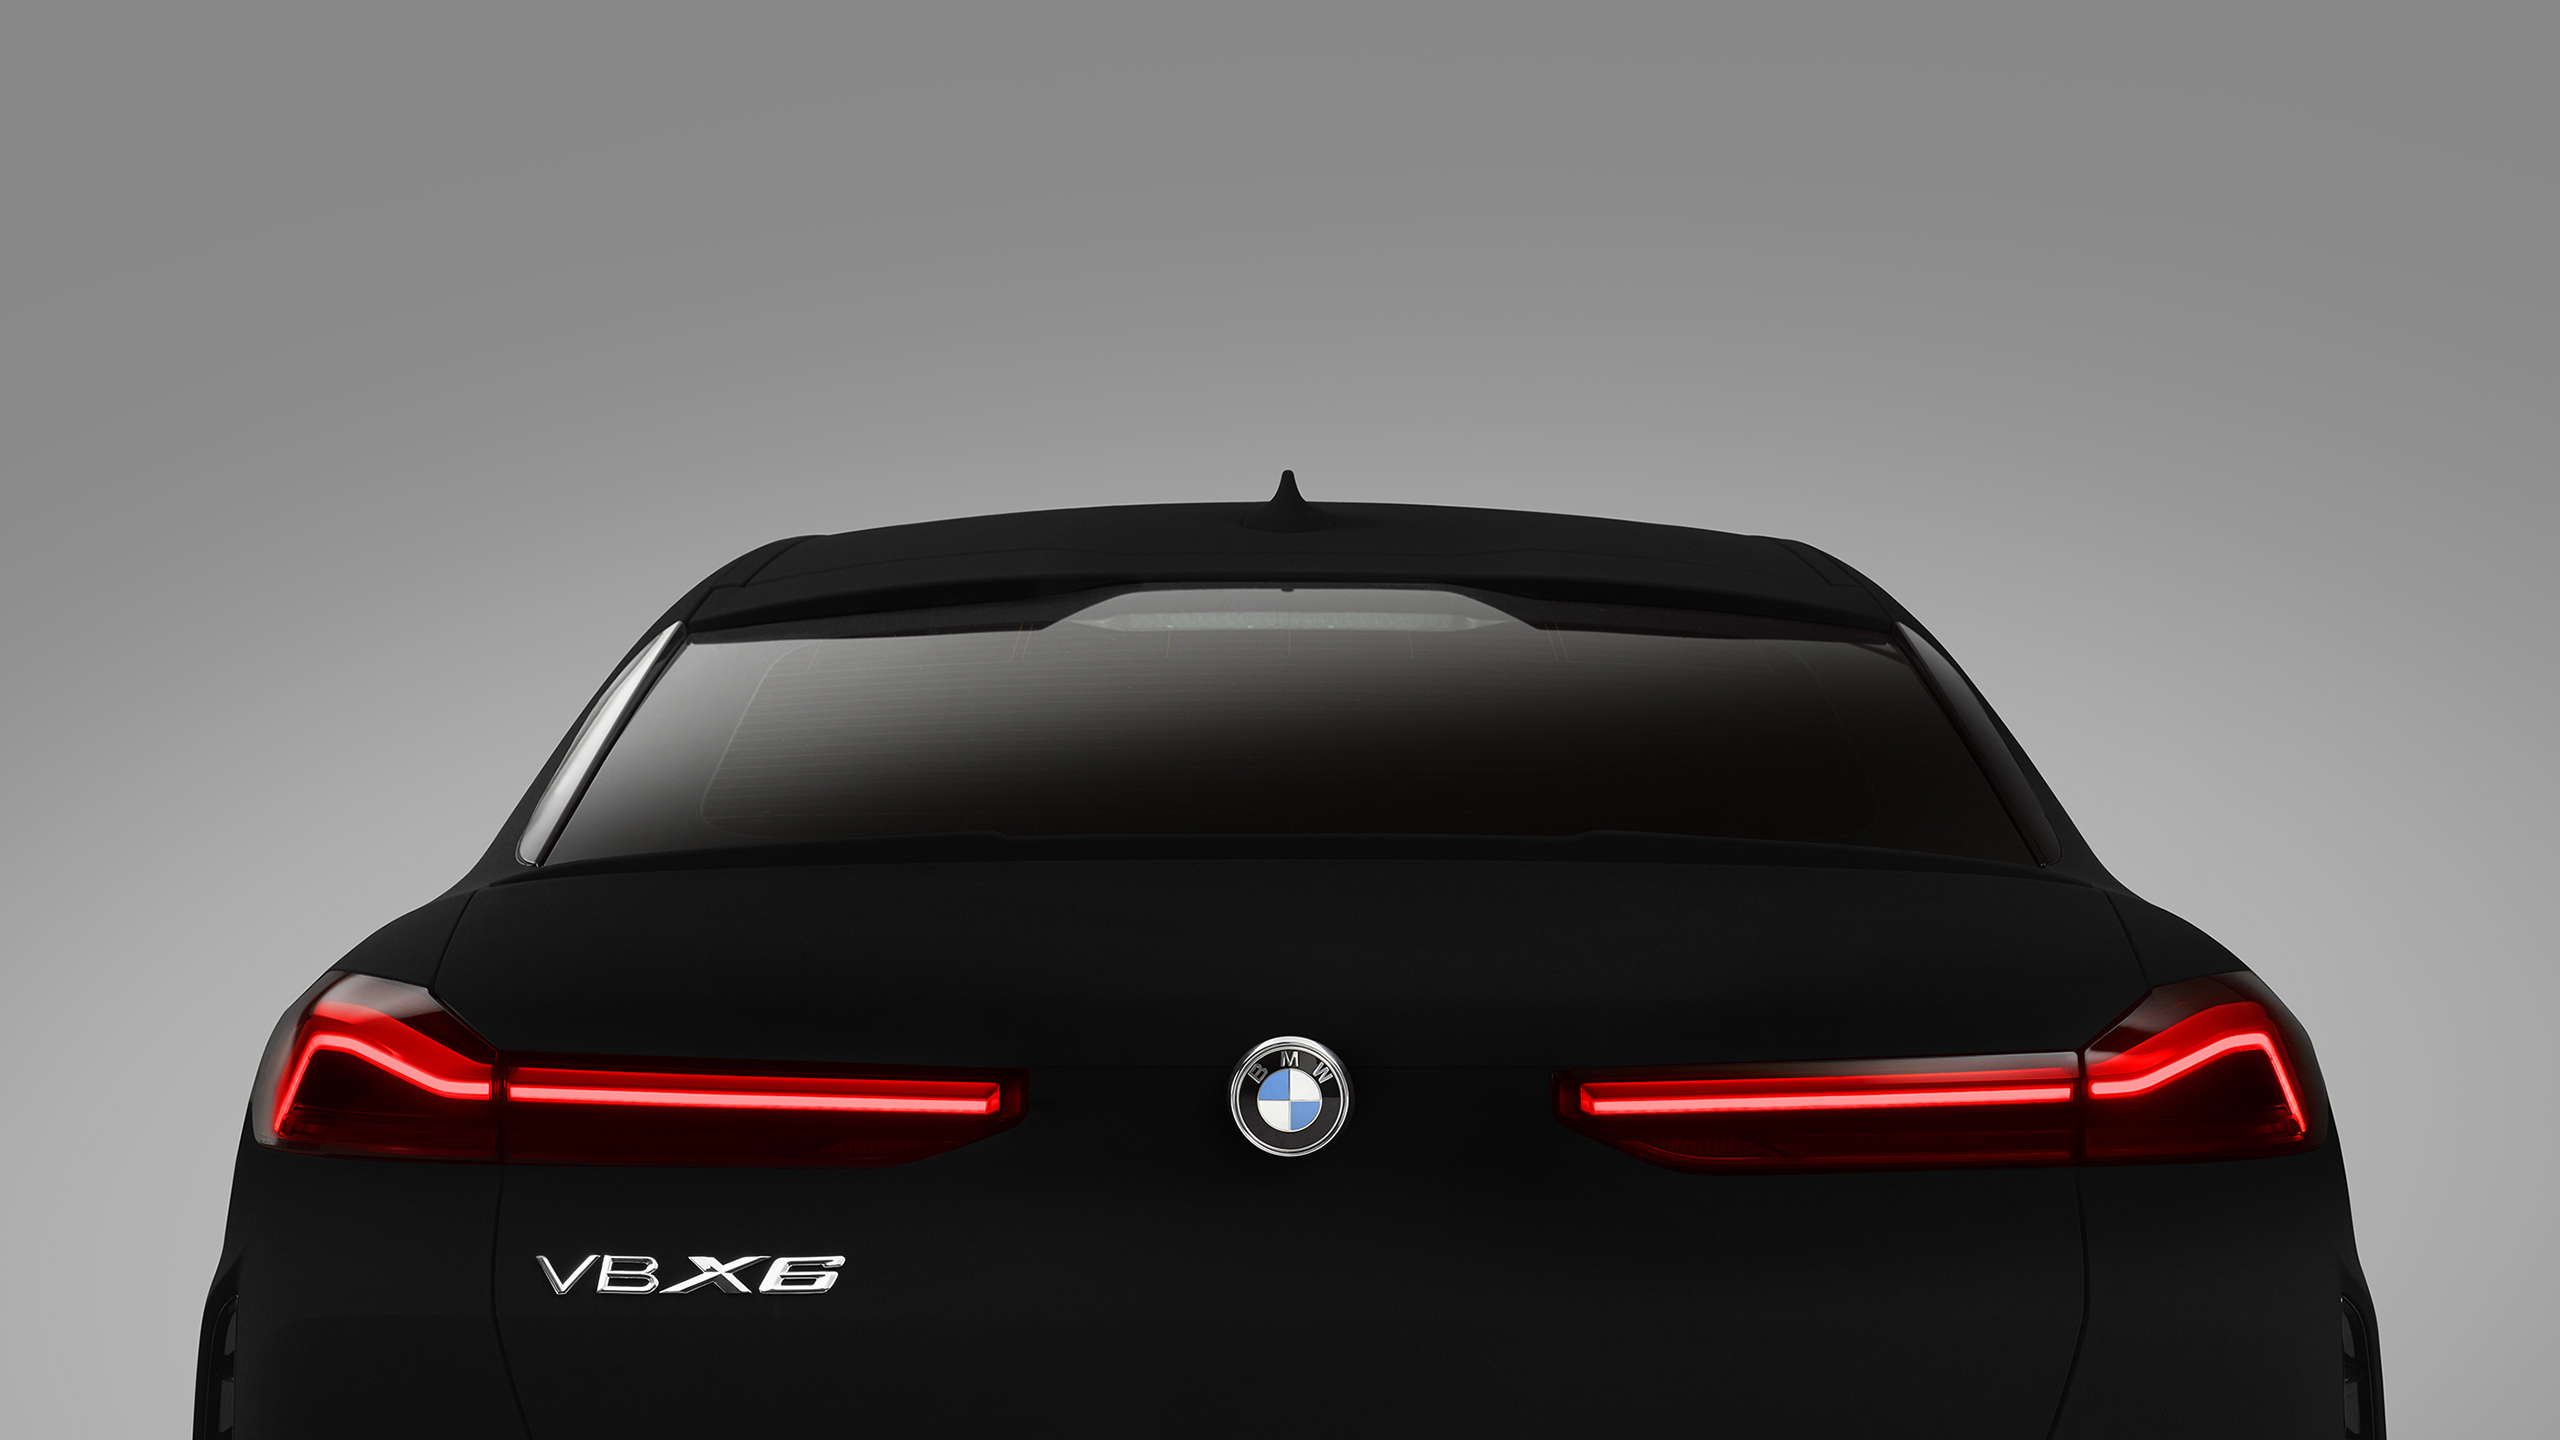 BMW X6 Vantablack 2019 4 Wallpaper HD Car Wallpapers ID 13182 2560x1440